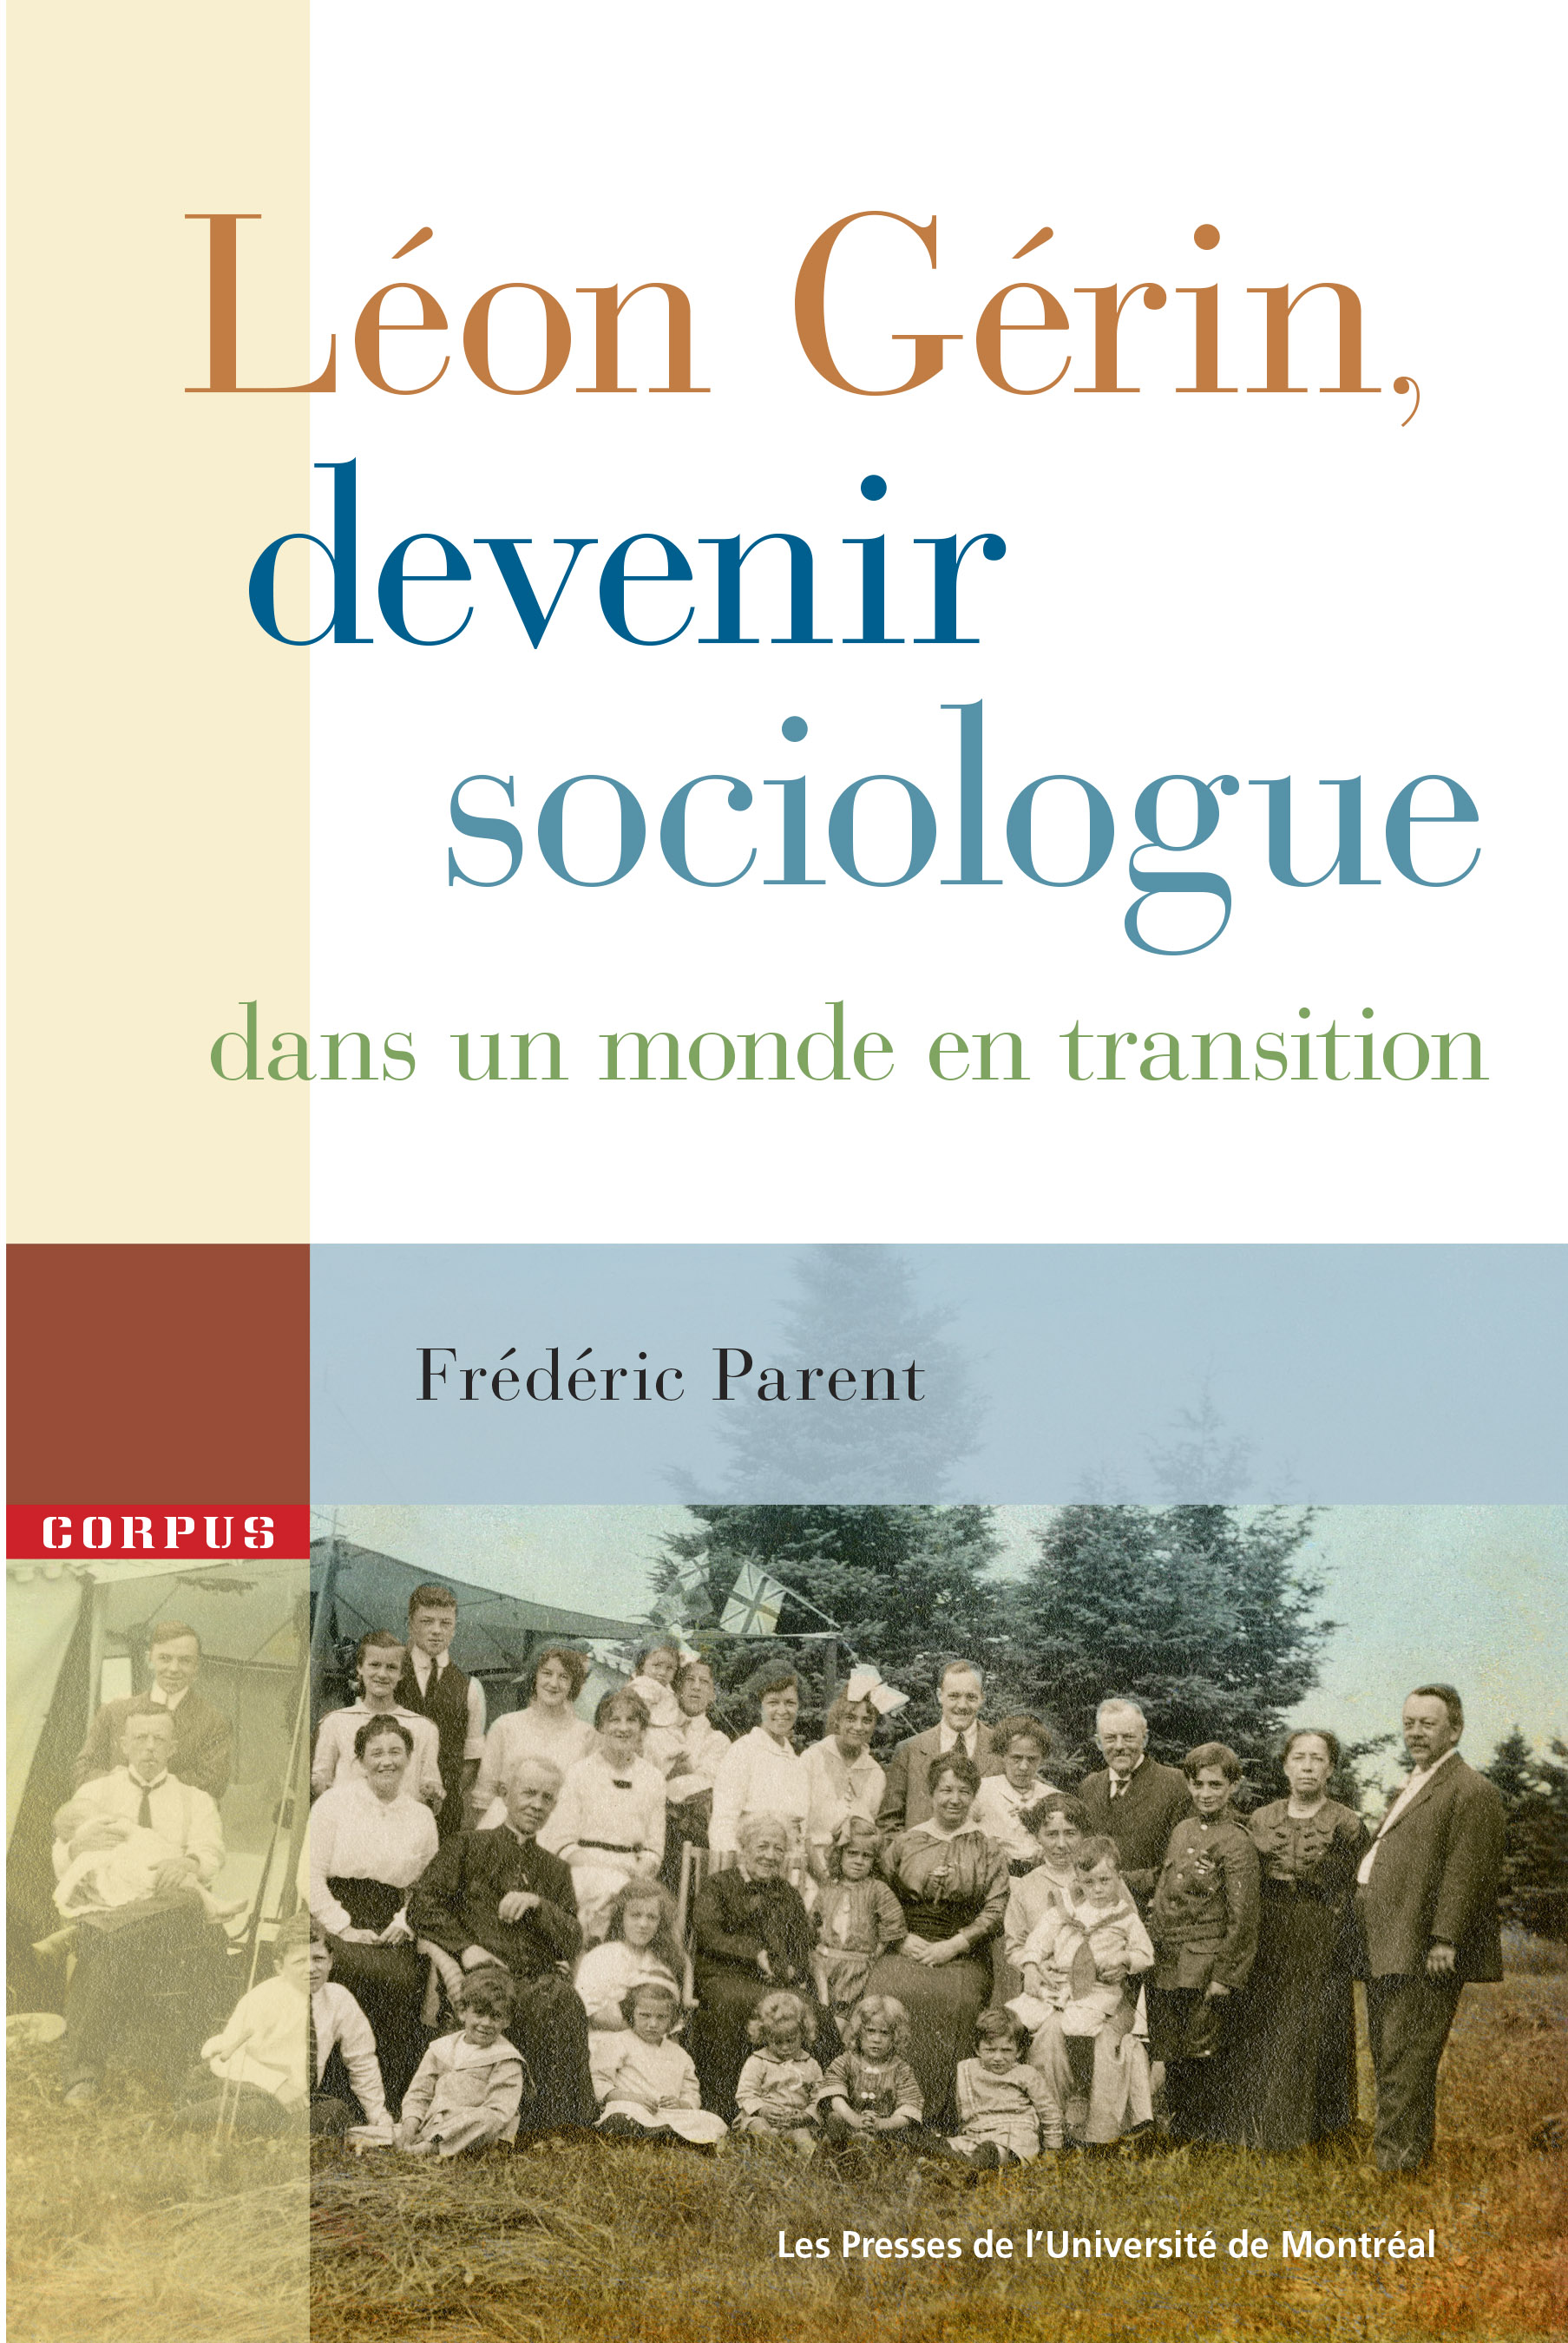 Léon Gérin, devenir sociologue dans un monde en transition